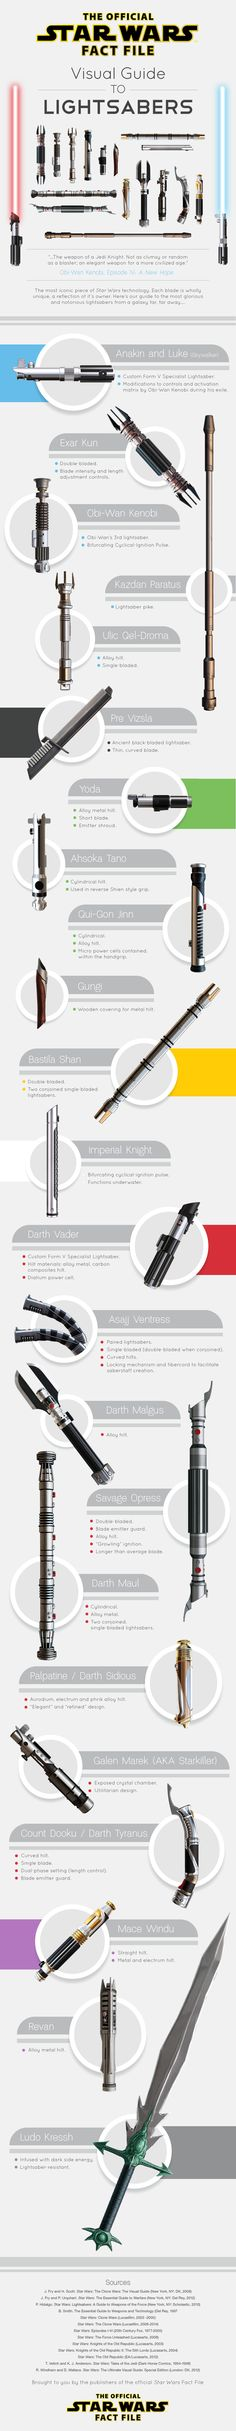 Star Wars Lightsaber guide - visual guide. #StarWarsfactfile #infographics #lightsabers #Starwars #geeklove  http://guides.starwarsfactfile.co.uk/lightsabers-a-visual-guide/